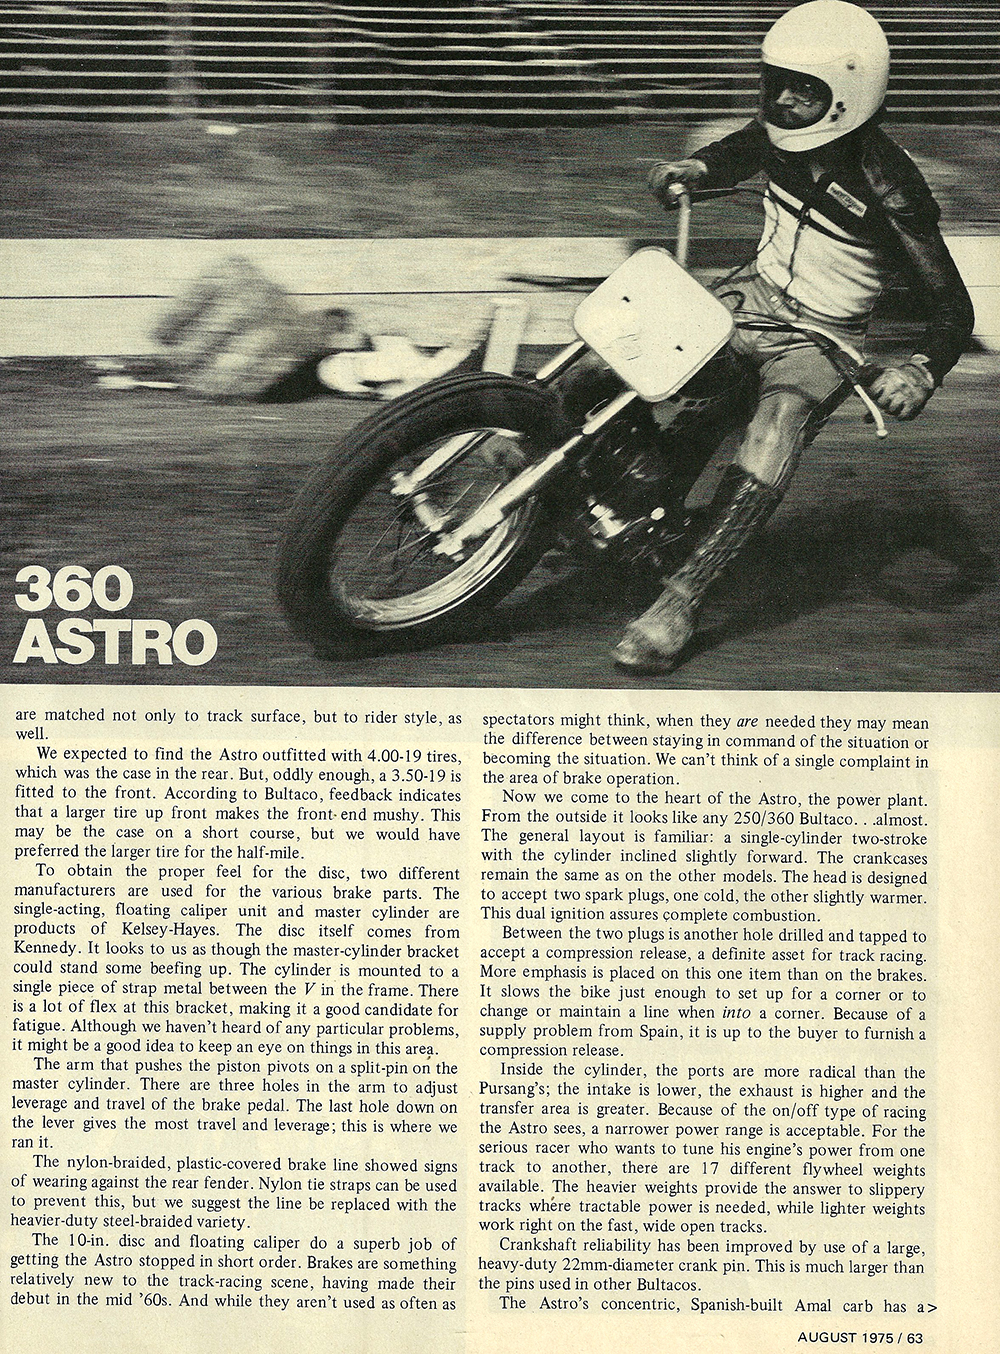 1975 Bultaco 360 Astro road test 04.jpg